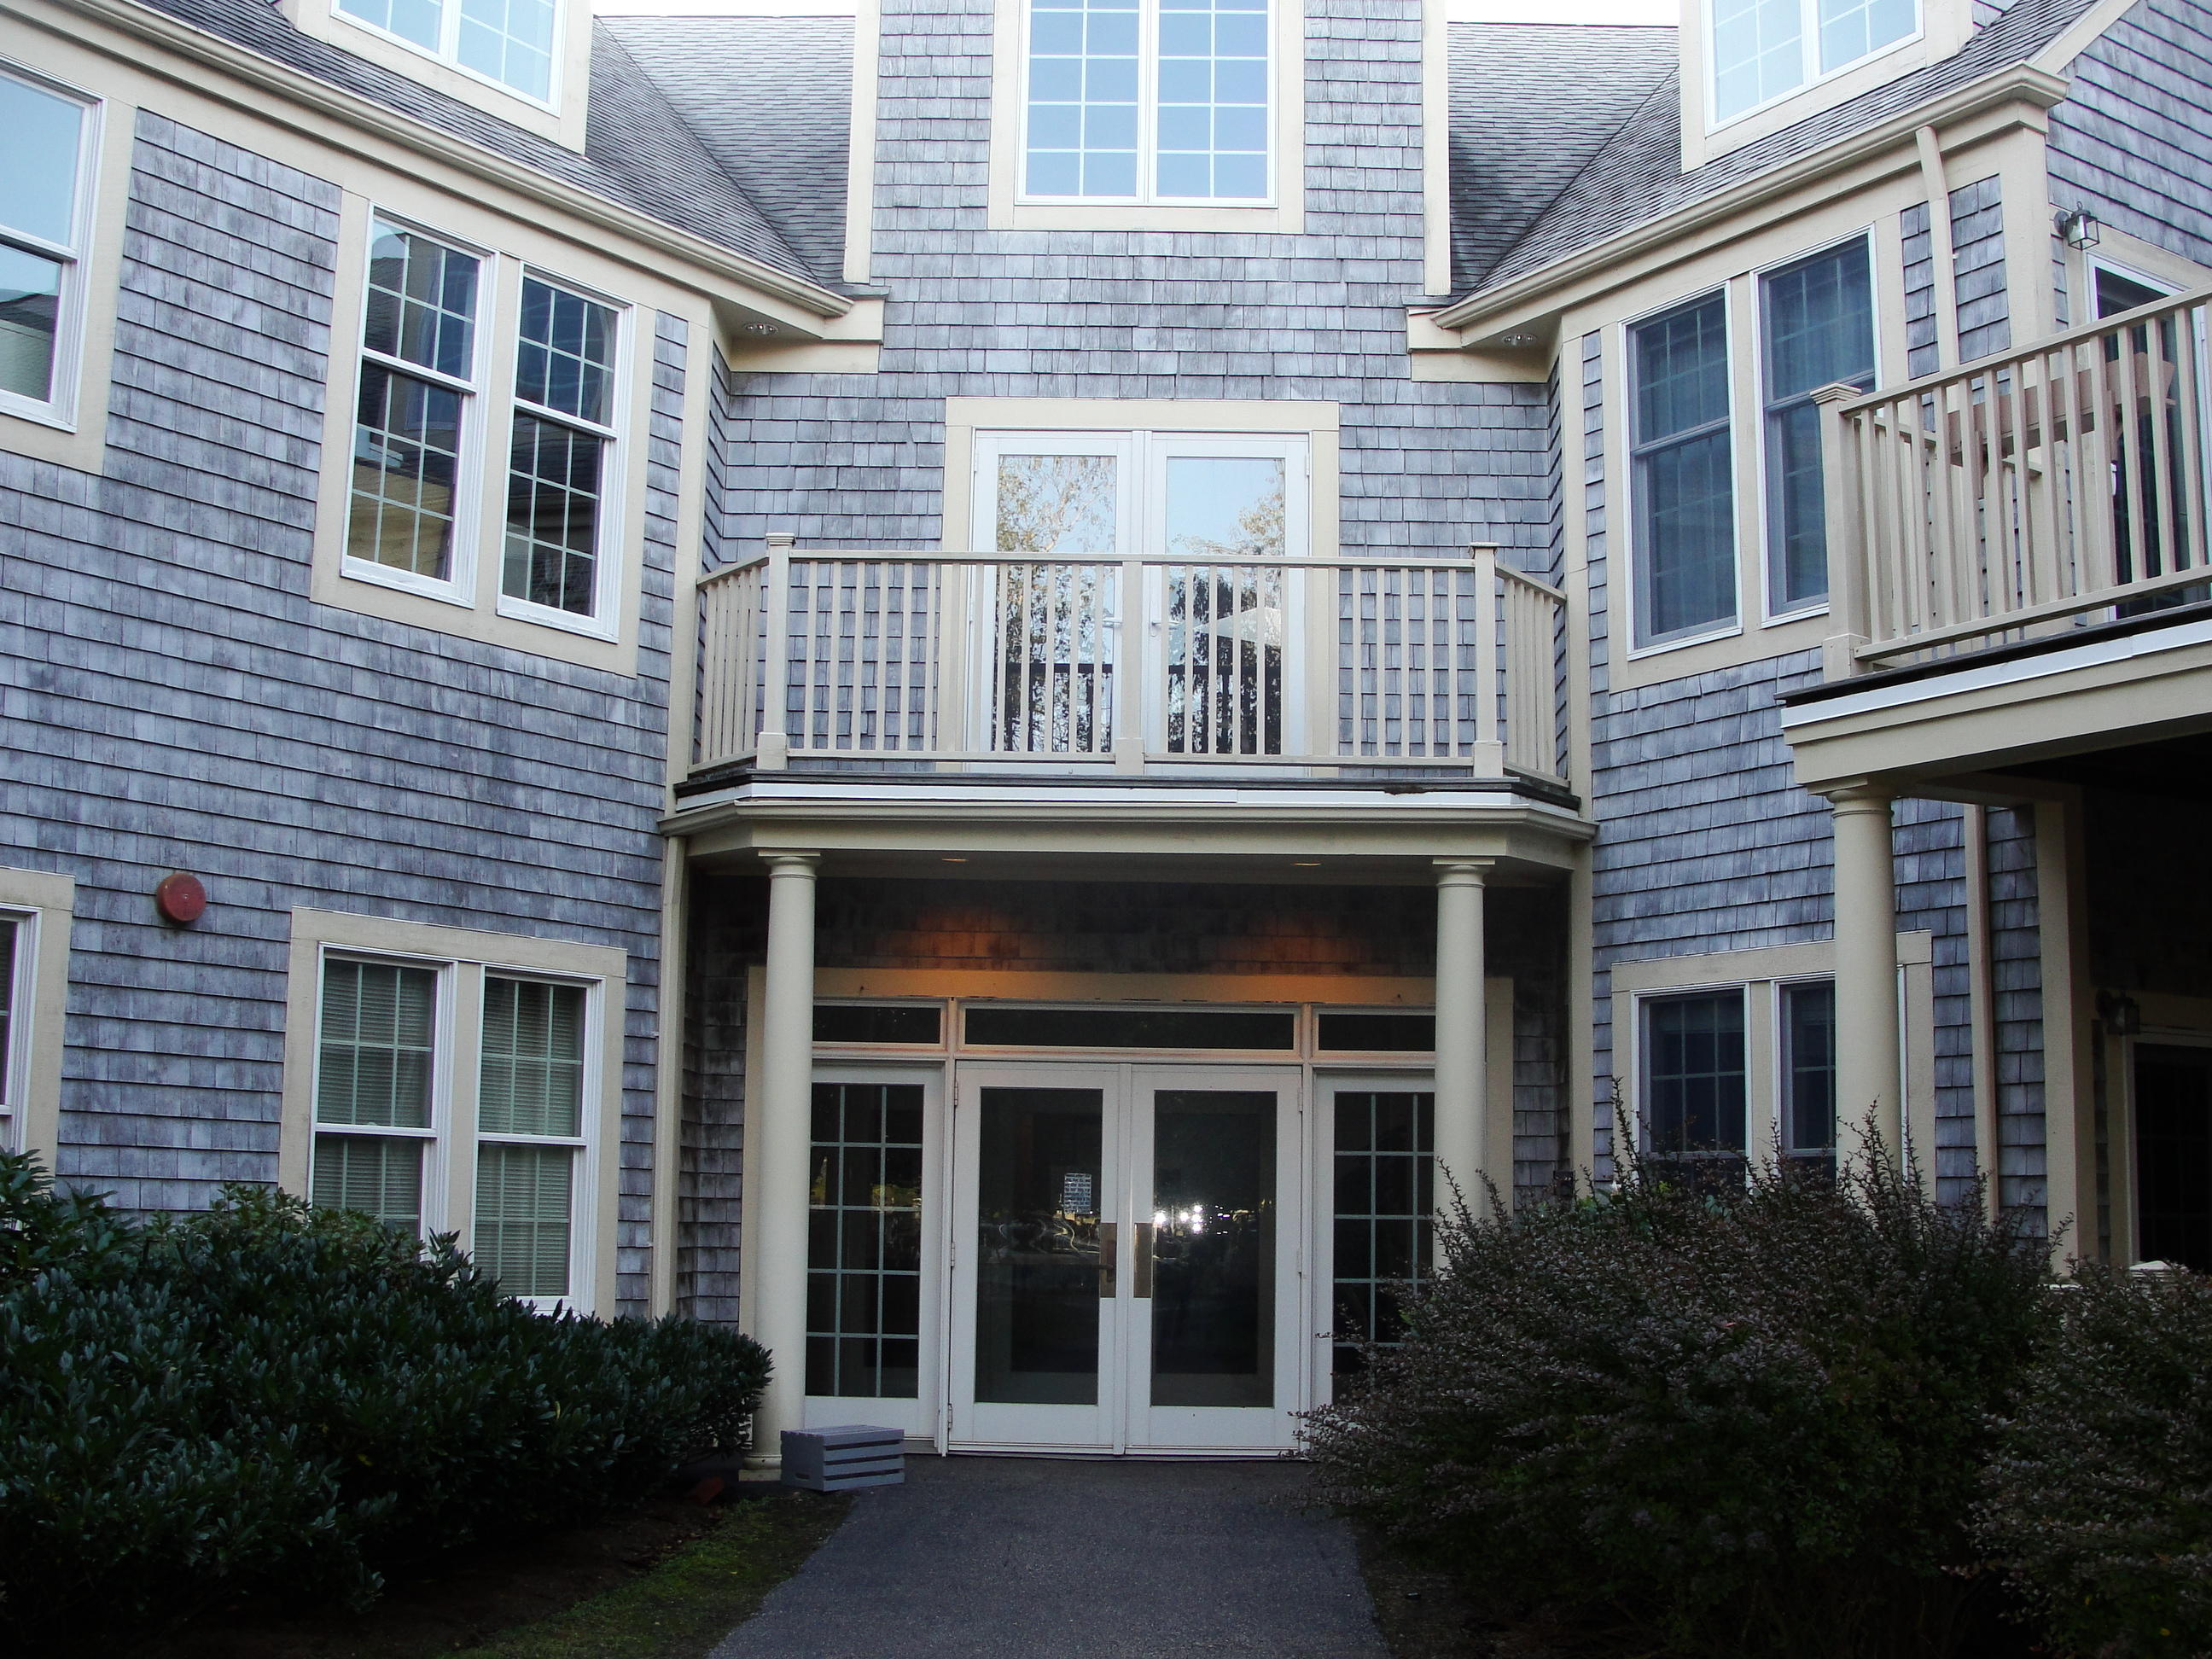 1203 Heatherwood Yarmouth Port MA, 02675 details